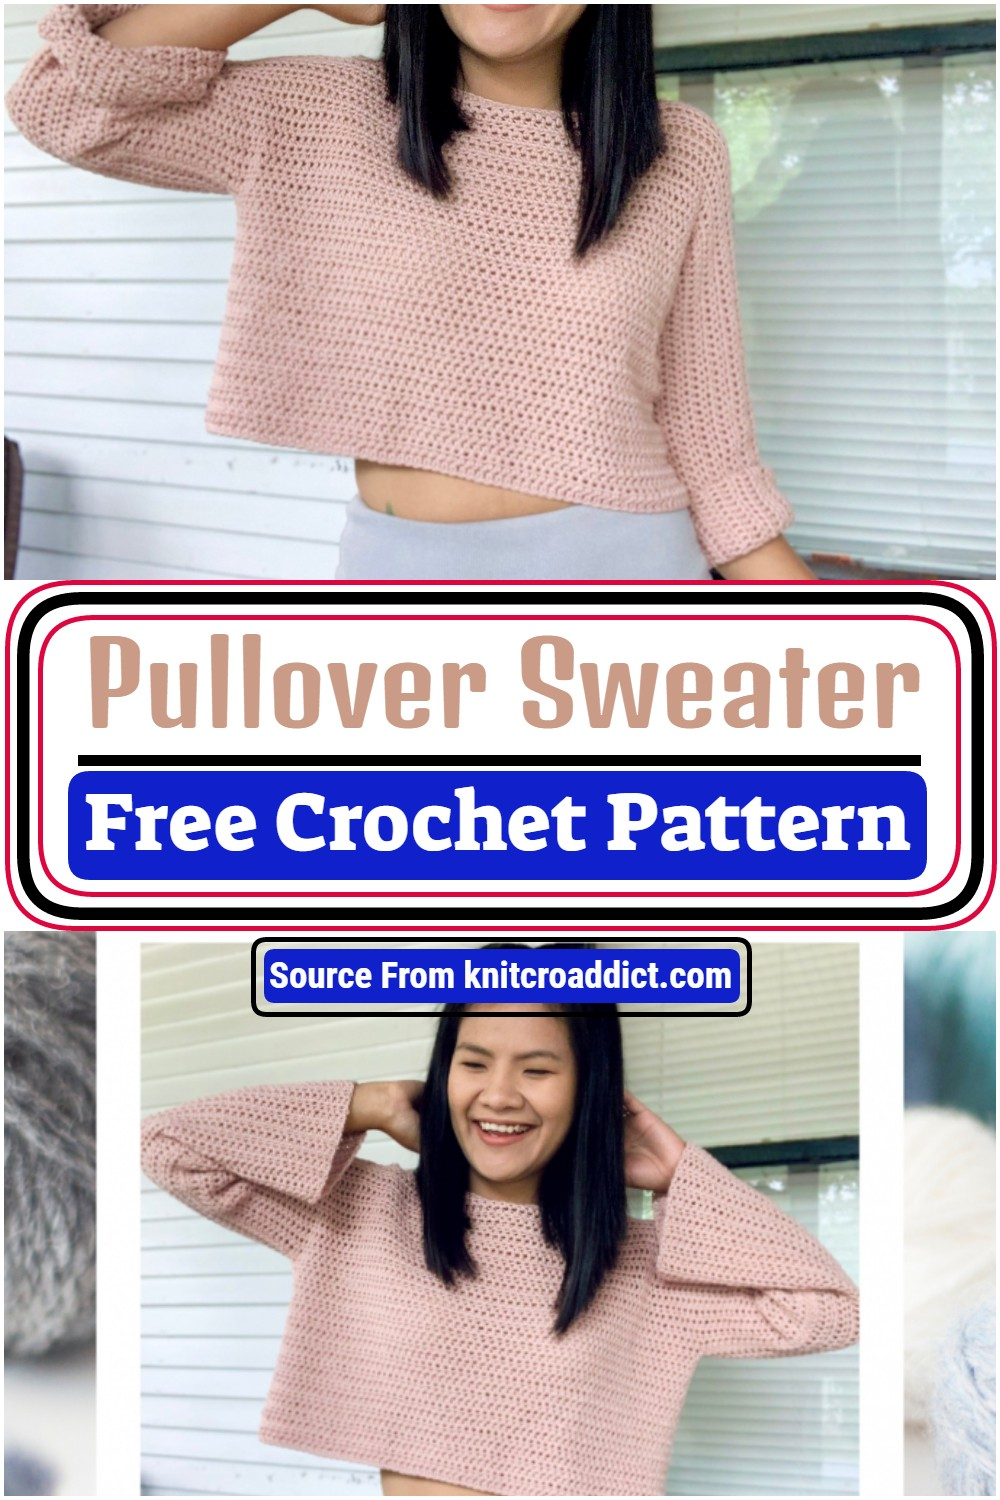 Crochet Pullover Sweater Pattern With Video Tutorial